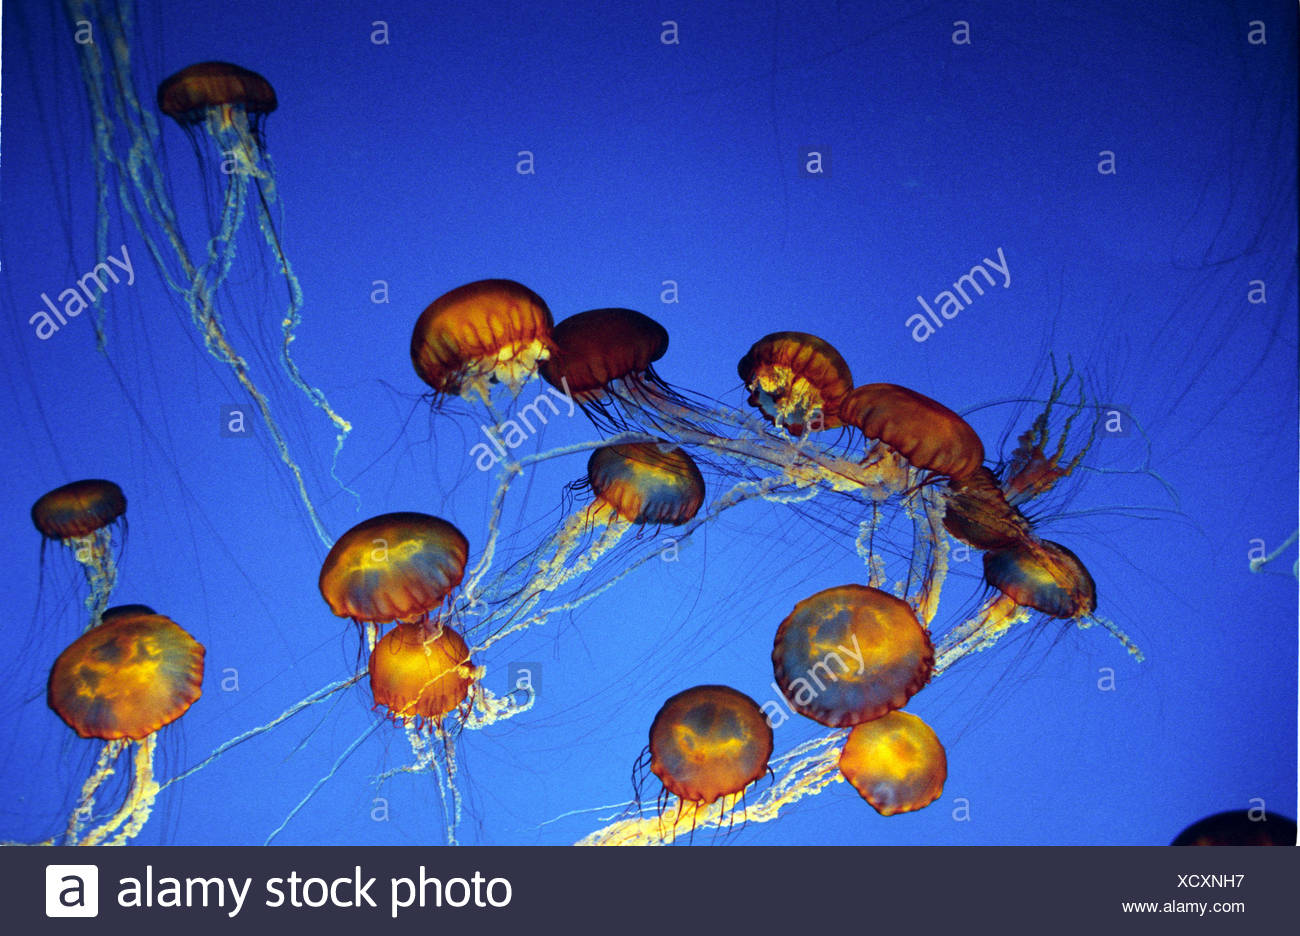 Purple-Stripped Jellyfish, pelagia noctiluca - Stock Image